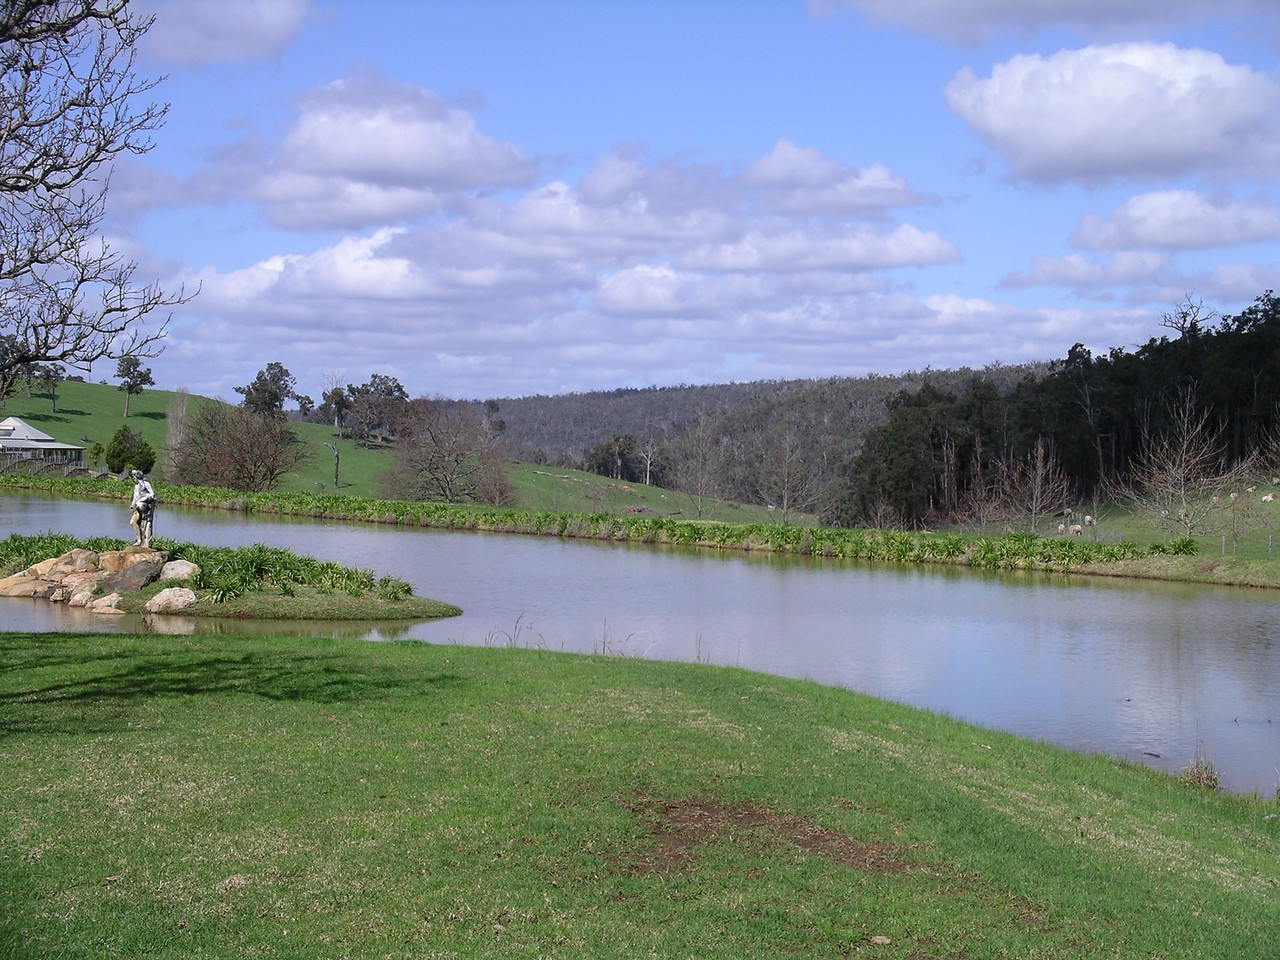 The Millbrook Winery